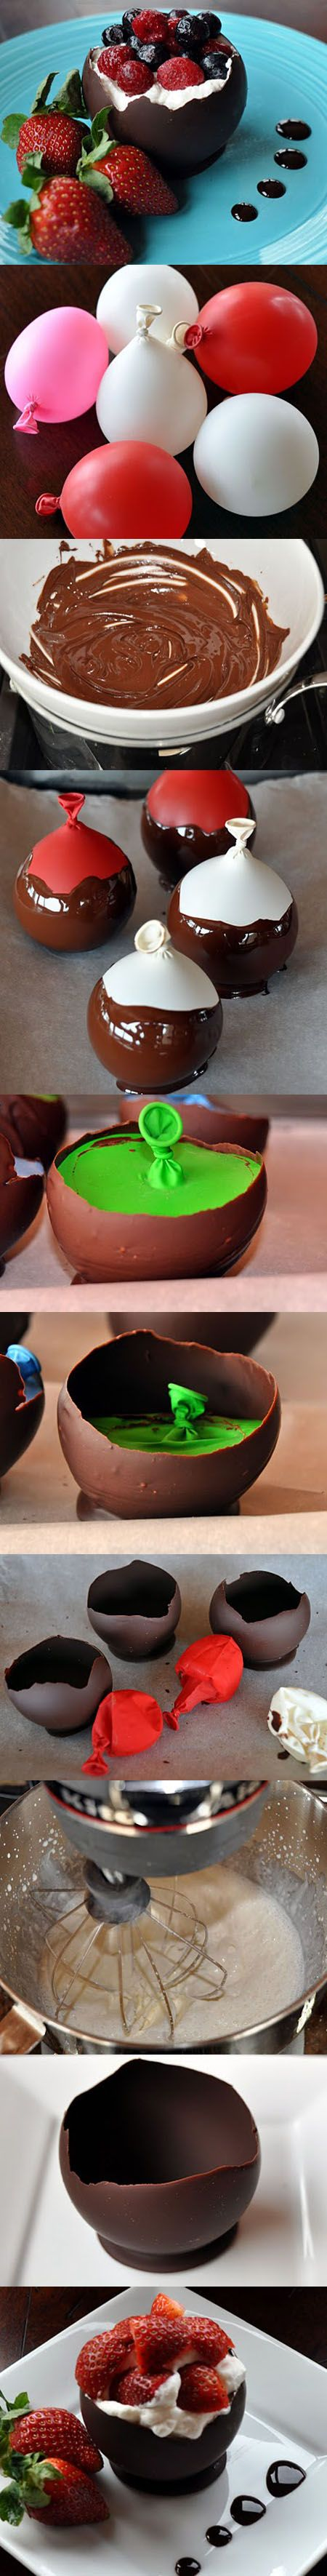 Chocolate bowl! These are cool!